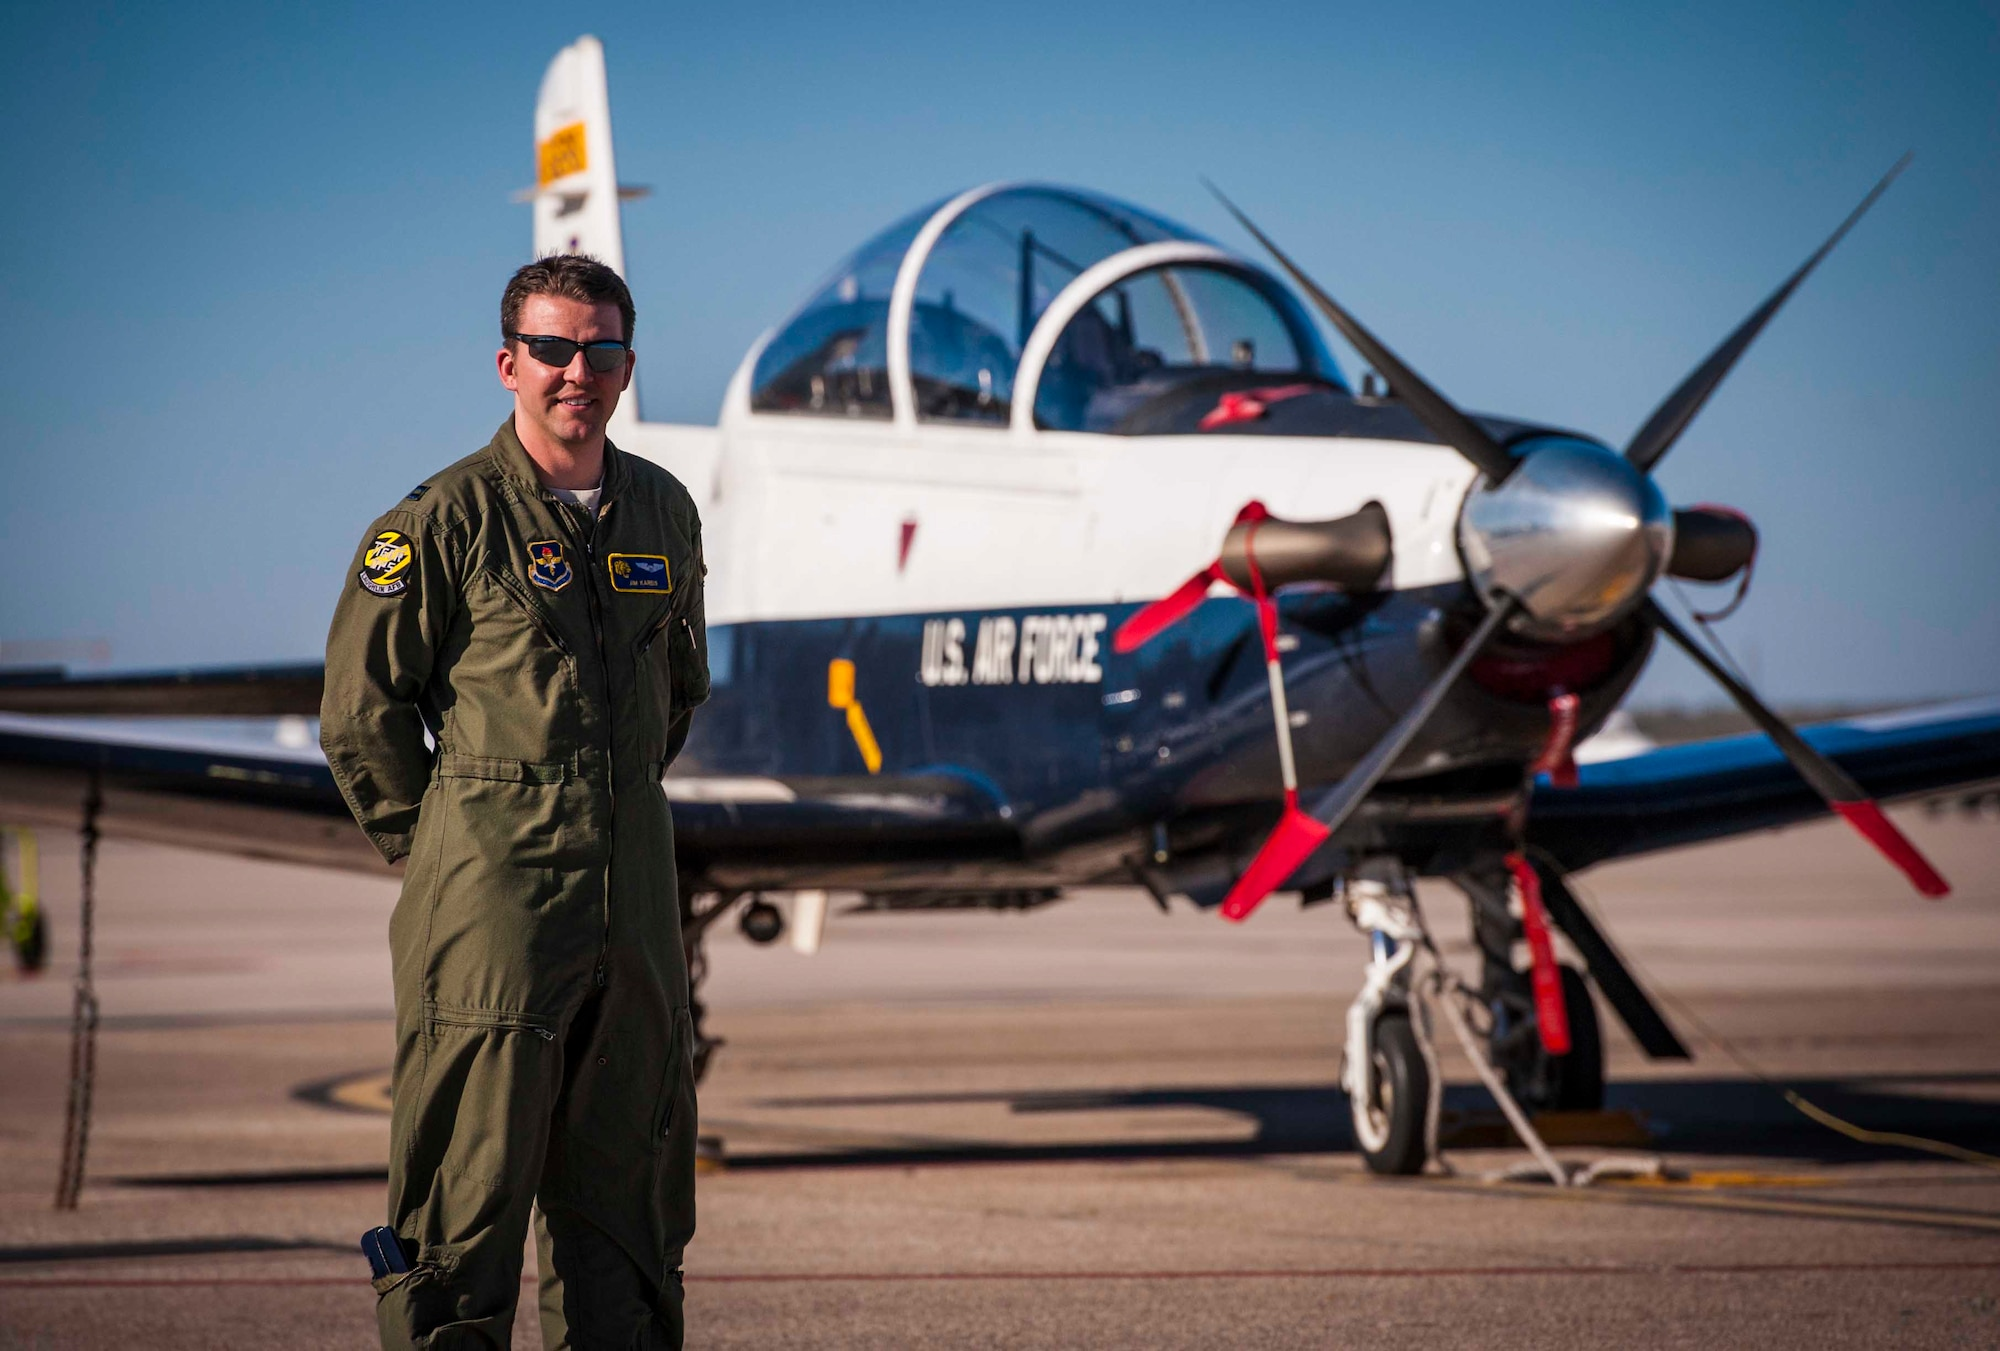 Air Force Capt. James Kareis, 85th Flying Training Squadron instructor pilot, poses for a picture in front of a T-6A Texan II aircraft at Laughlin Air Force Base, Texas, Dec. 12, 2012. During a routine return flight from Fort Worth Alliance Airport, he heard distress calls from an aircraft experiencing engine malfunctions and acted as a liaison between the aircraft and air traffic controllers in Houston, Texas. Kareis helped to ensure responders had accurate coordinates of his location after landing in a field safely. (U.S. Air Force photo/Senior Airman Scott Saldukas)